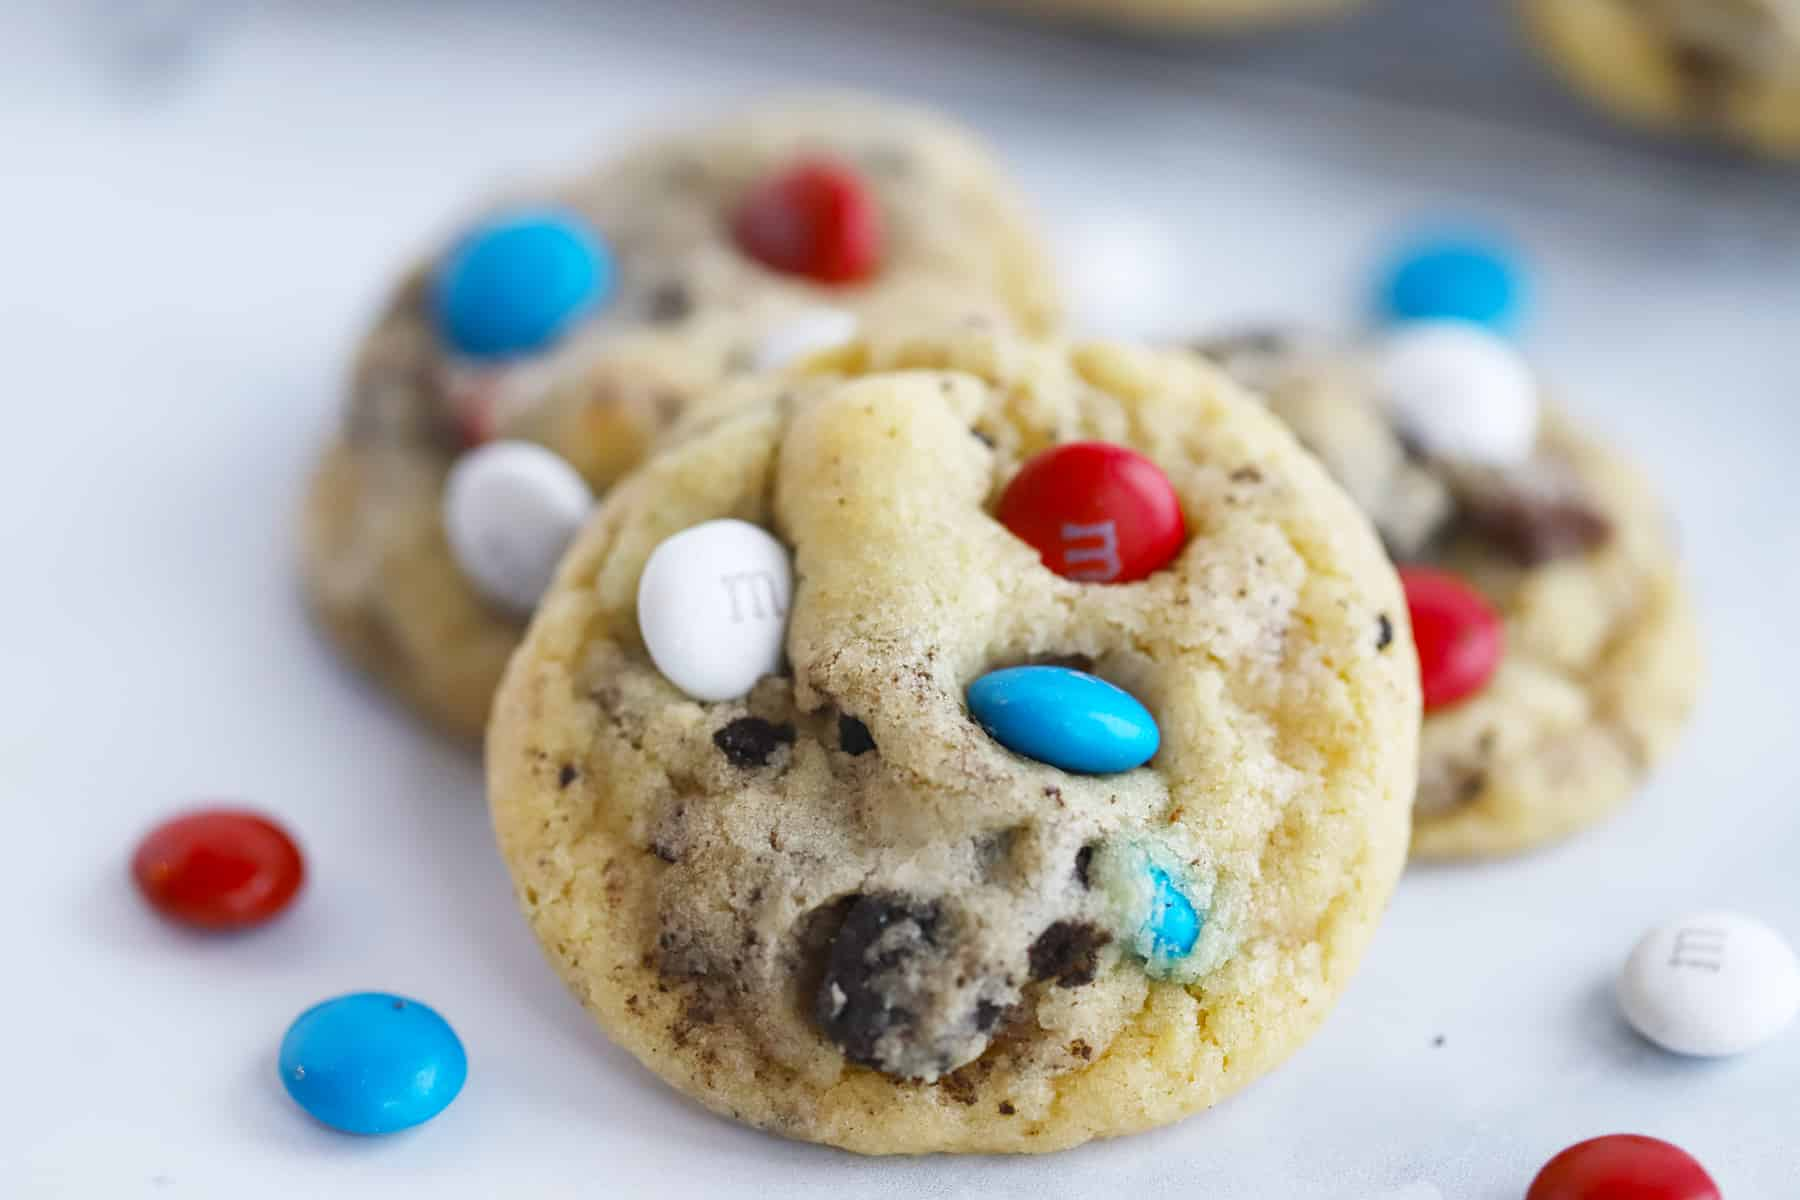 Chocolate chip cookies filled with Oreos and M&Ms.